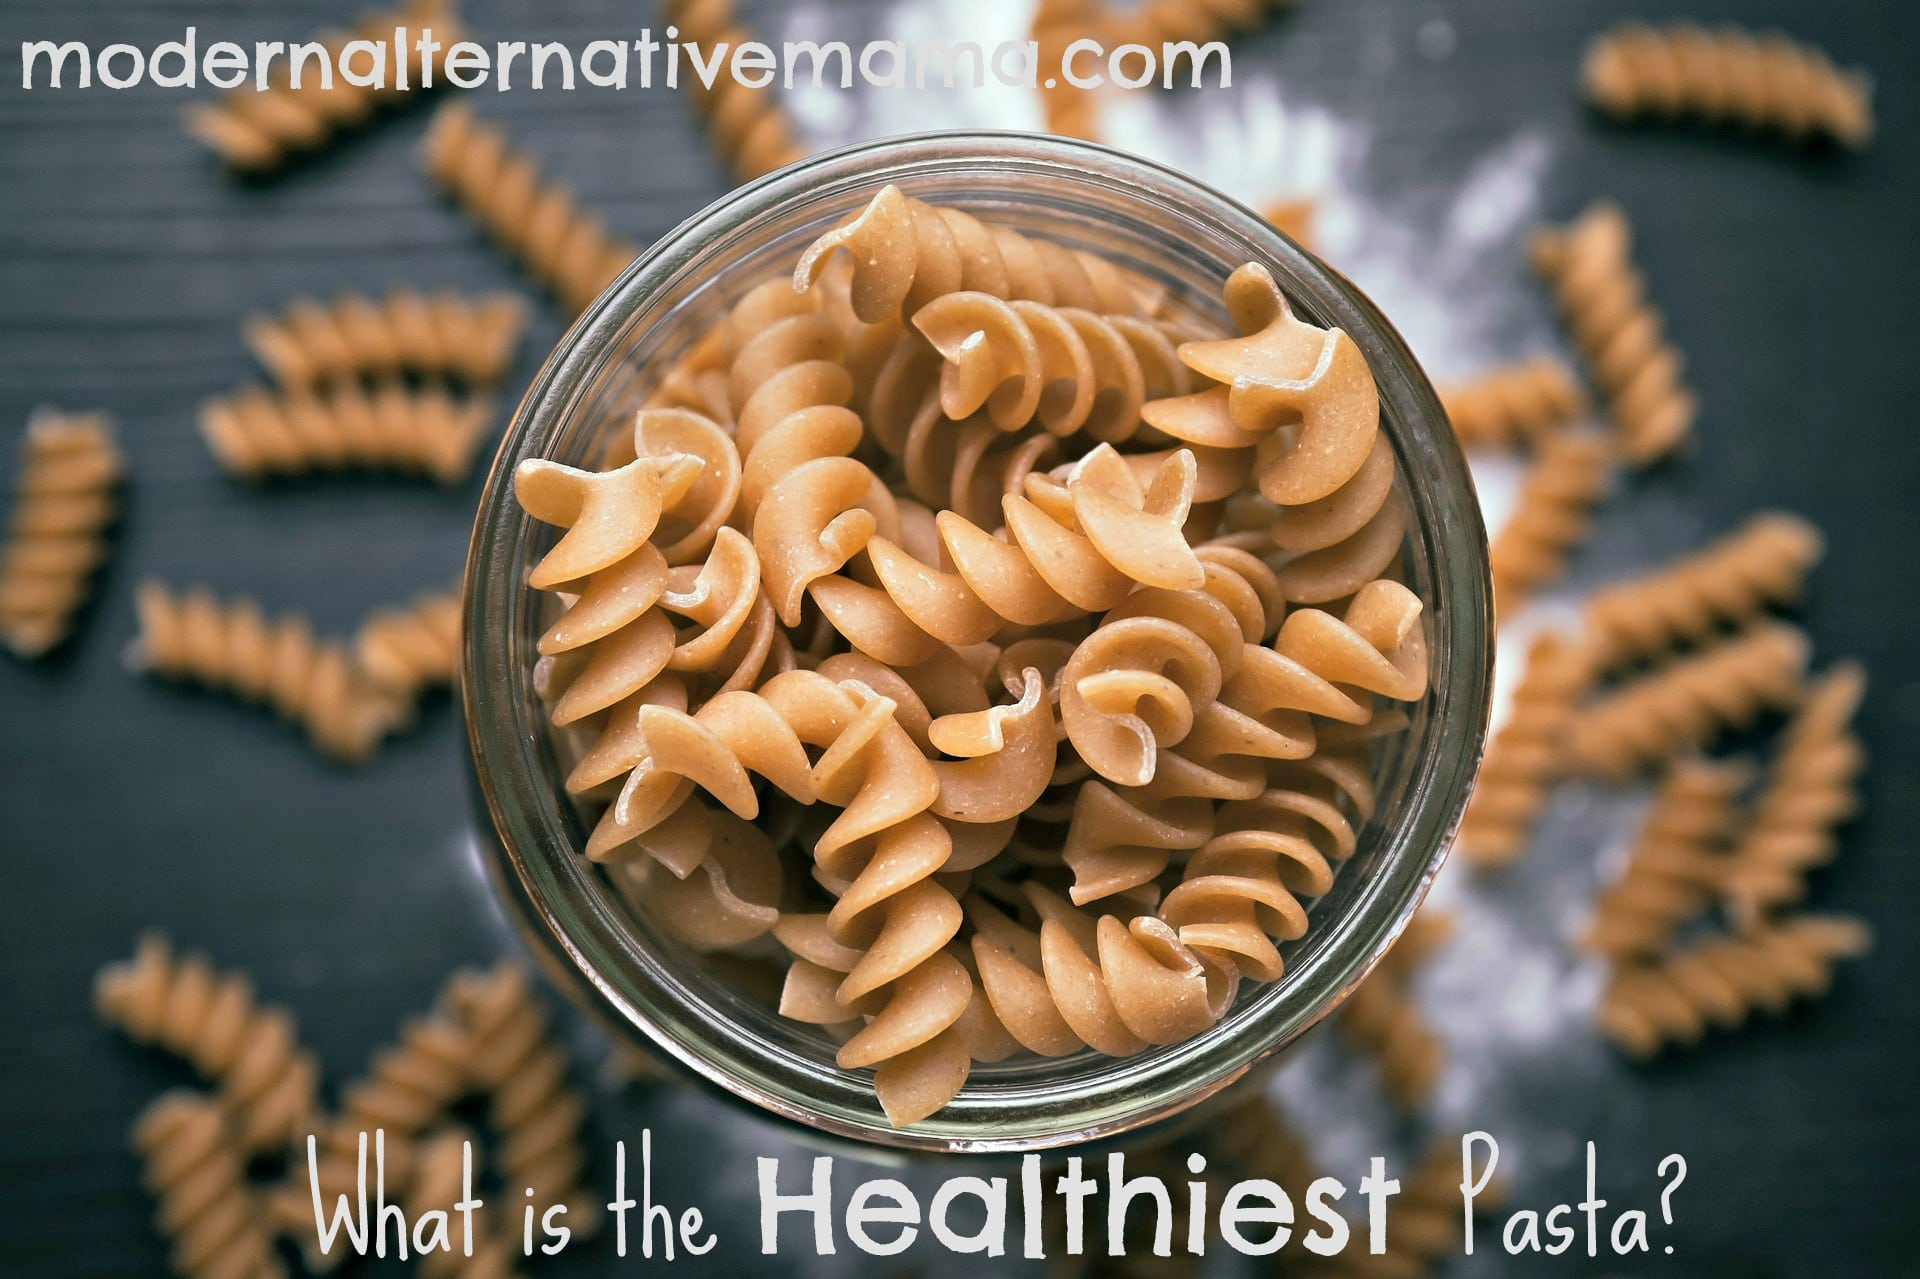 What is the healthiest pasta